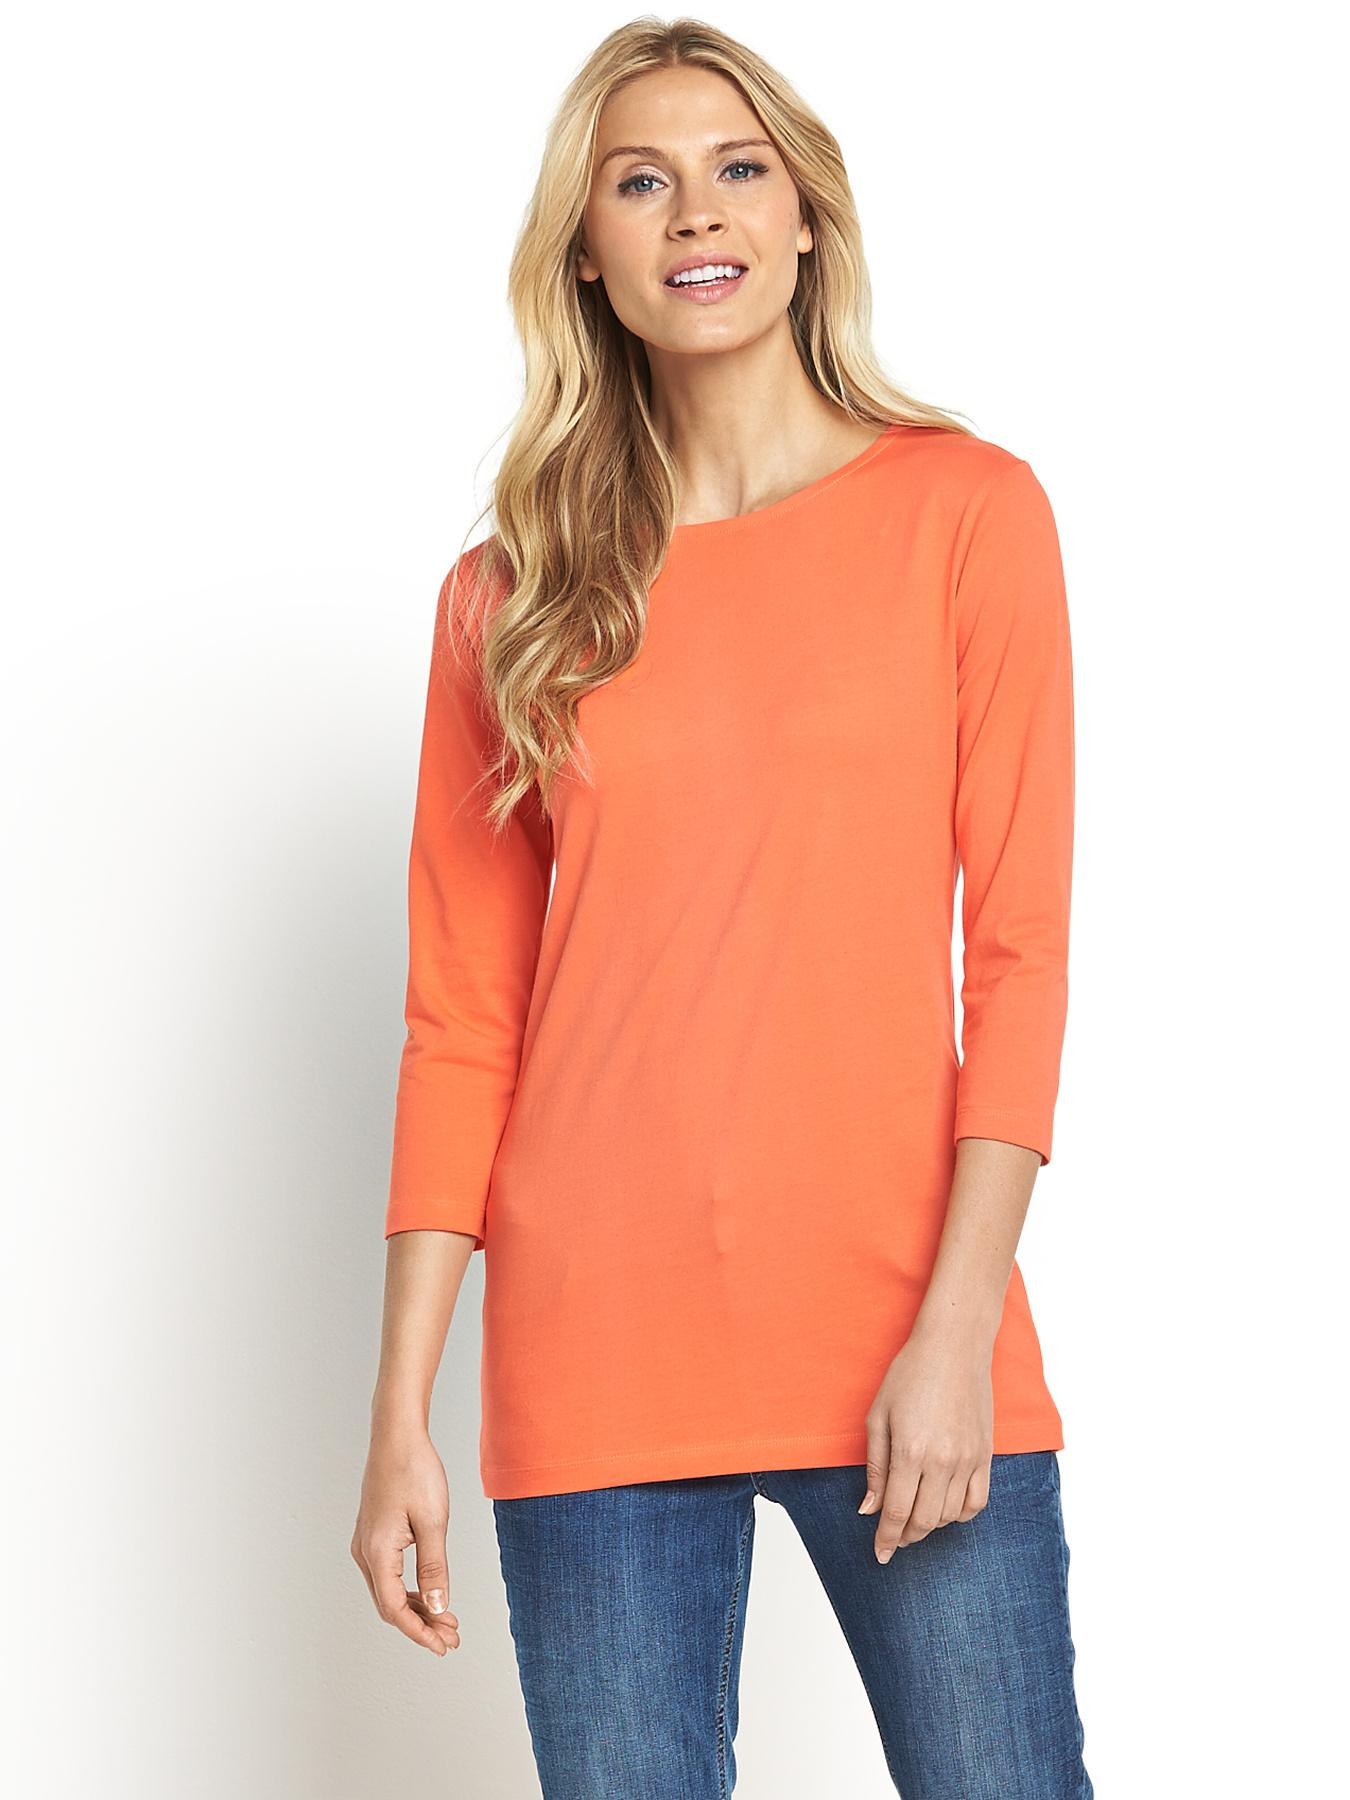 Tall Three-Quarter Sleeve Crew Neck top, Black,Grey,Coral,White at Littlewoods